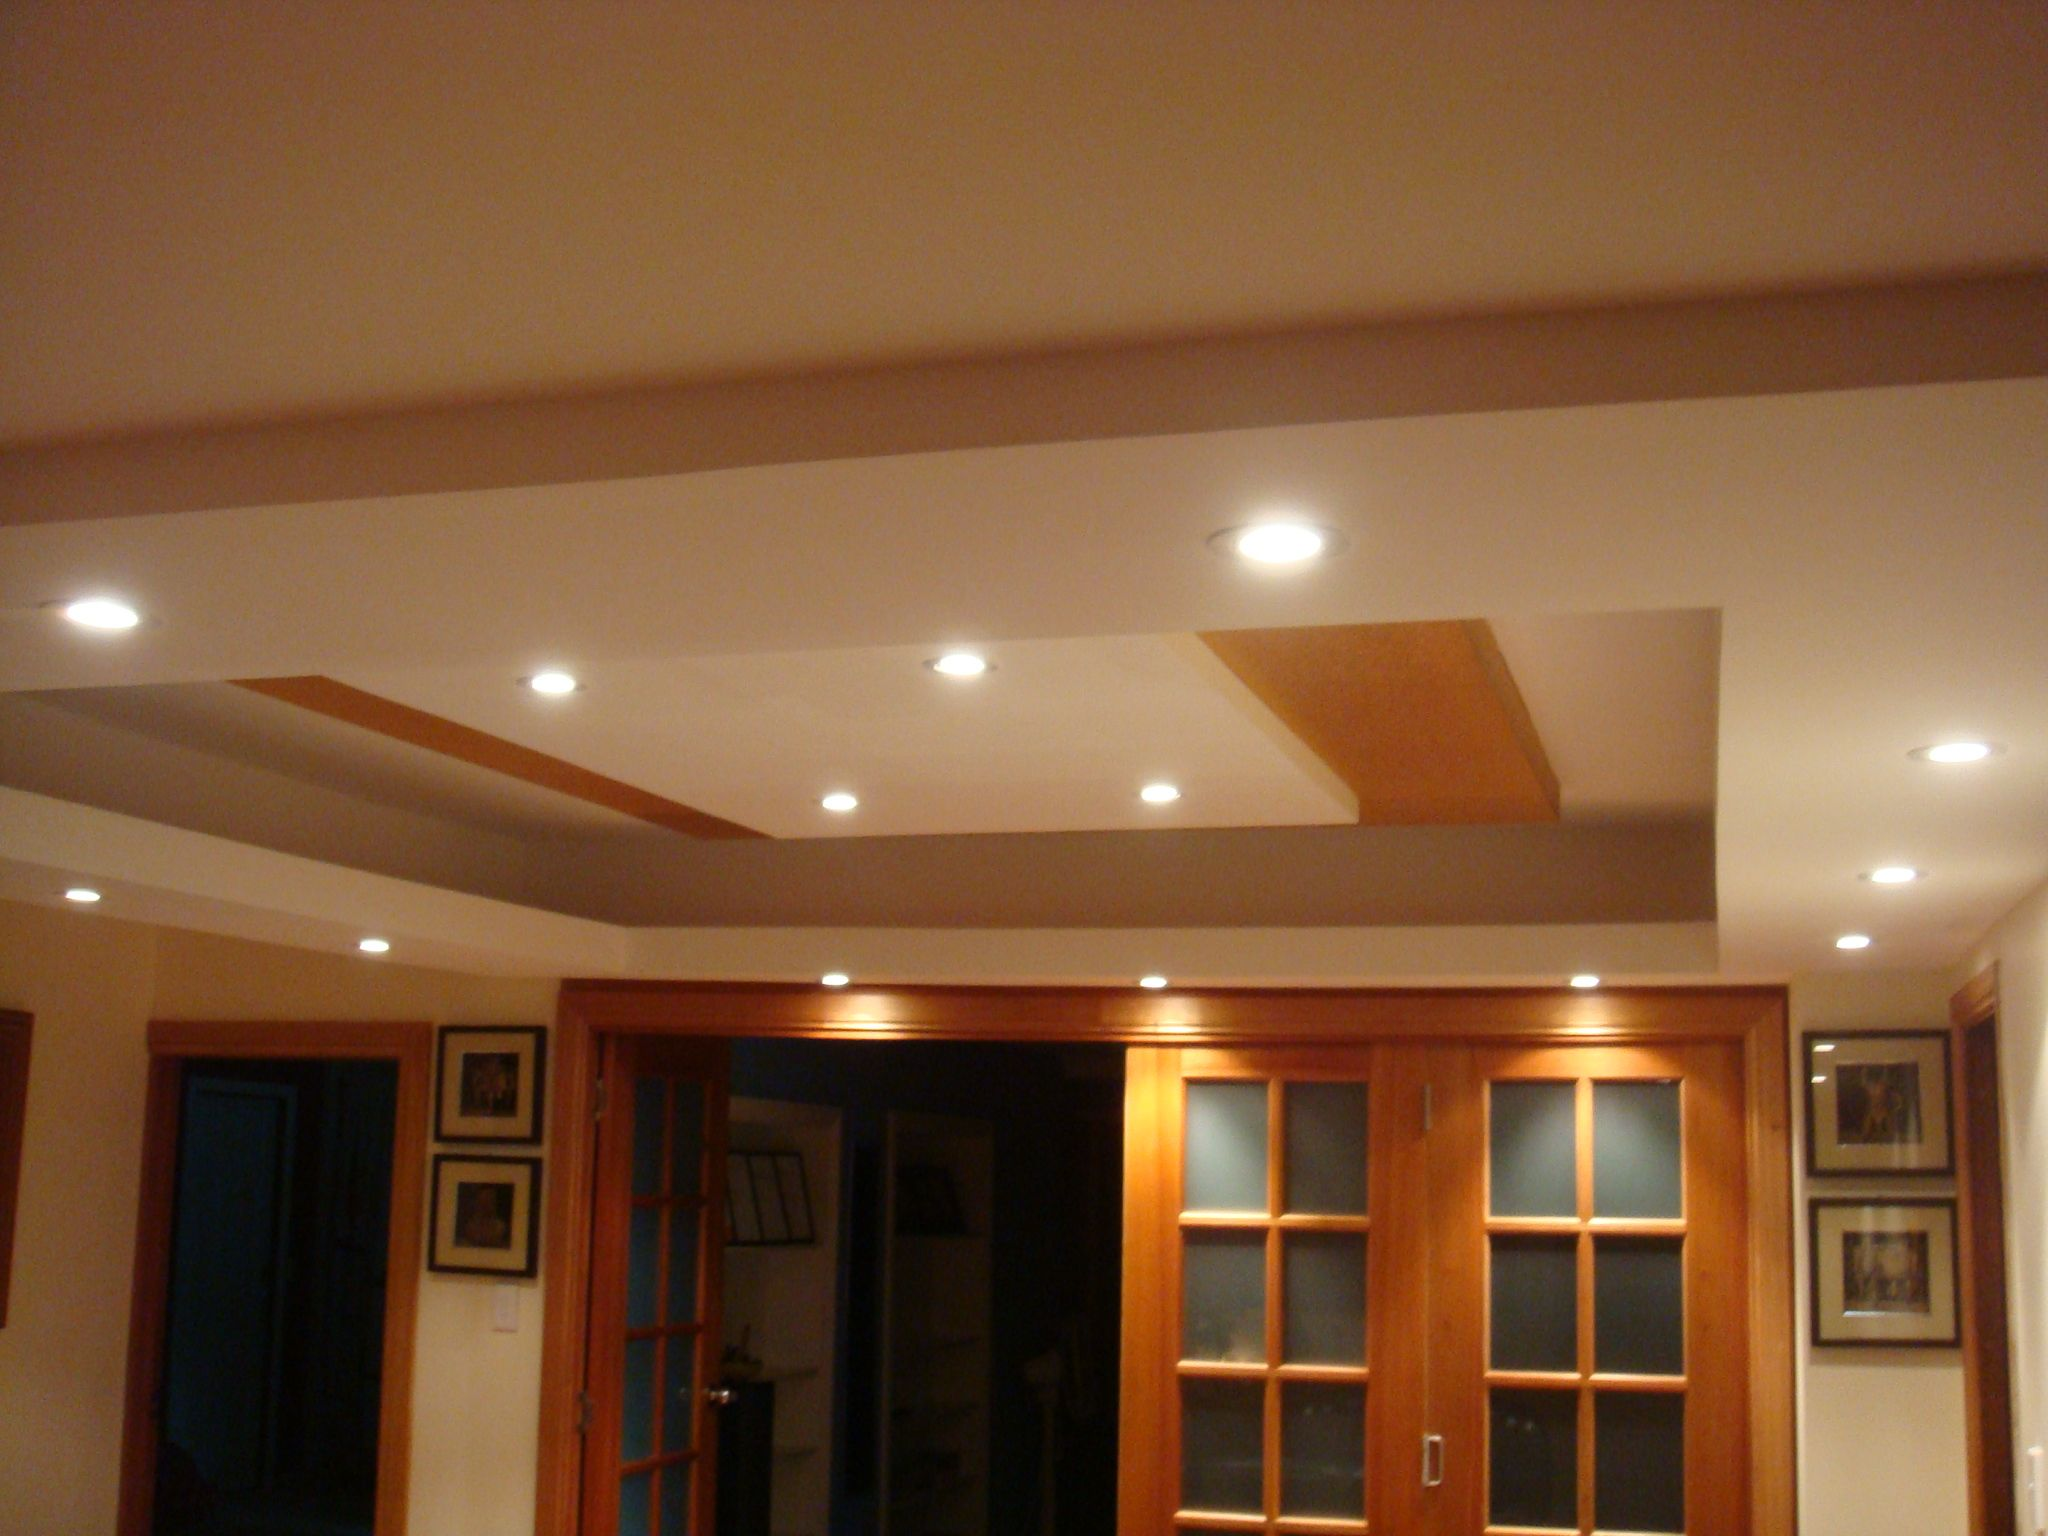 Latest gypsum ceiling designs hall image vectronstudios for Latest lounge room designs